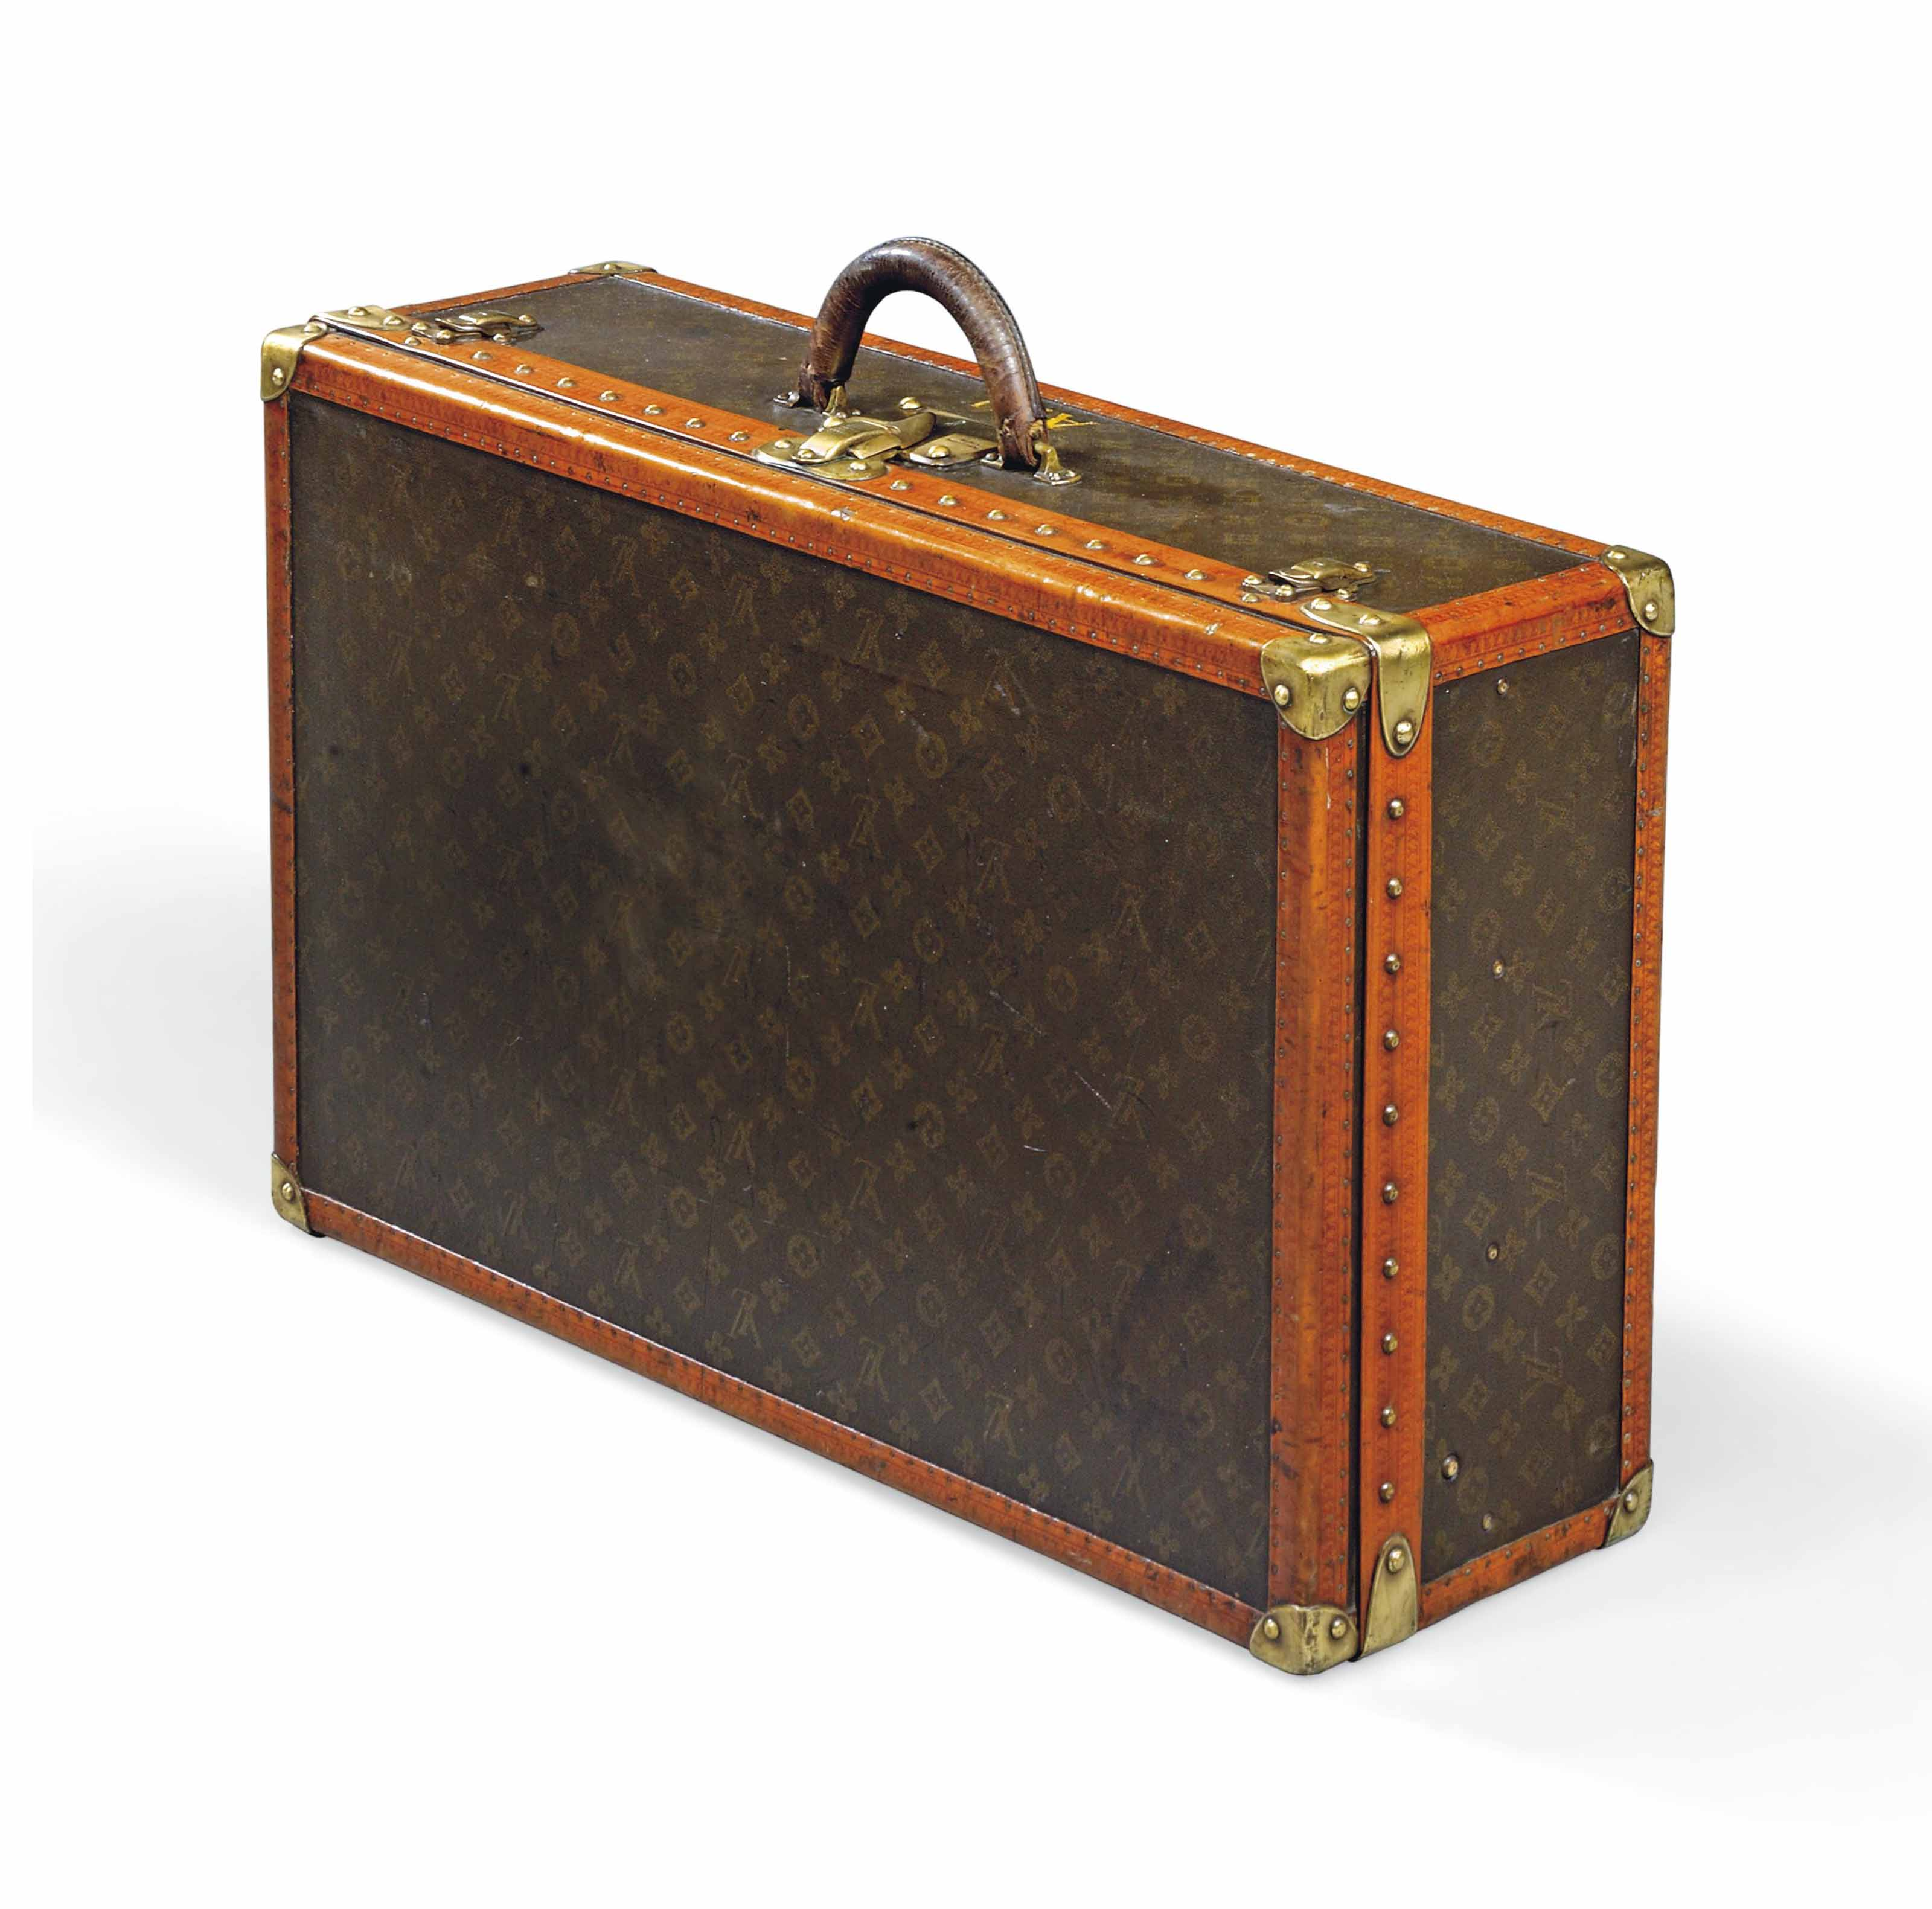 A HARD-SIDED ALZER SUITCASE IN